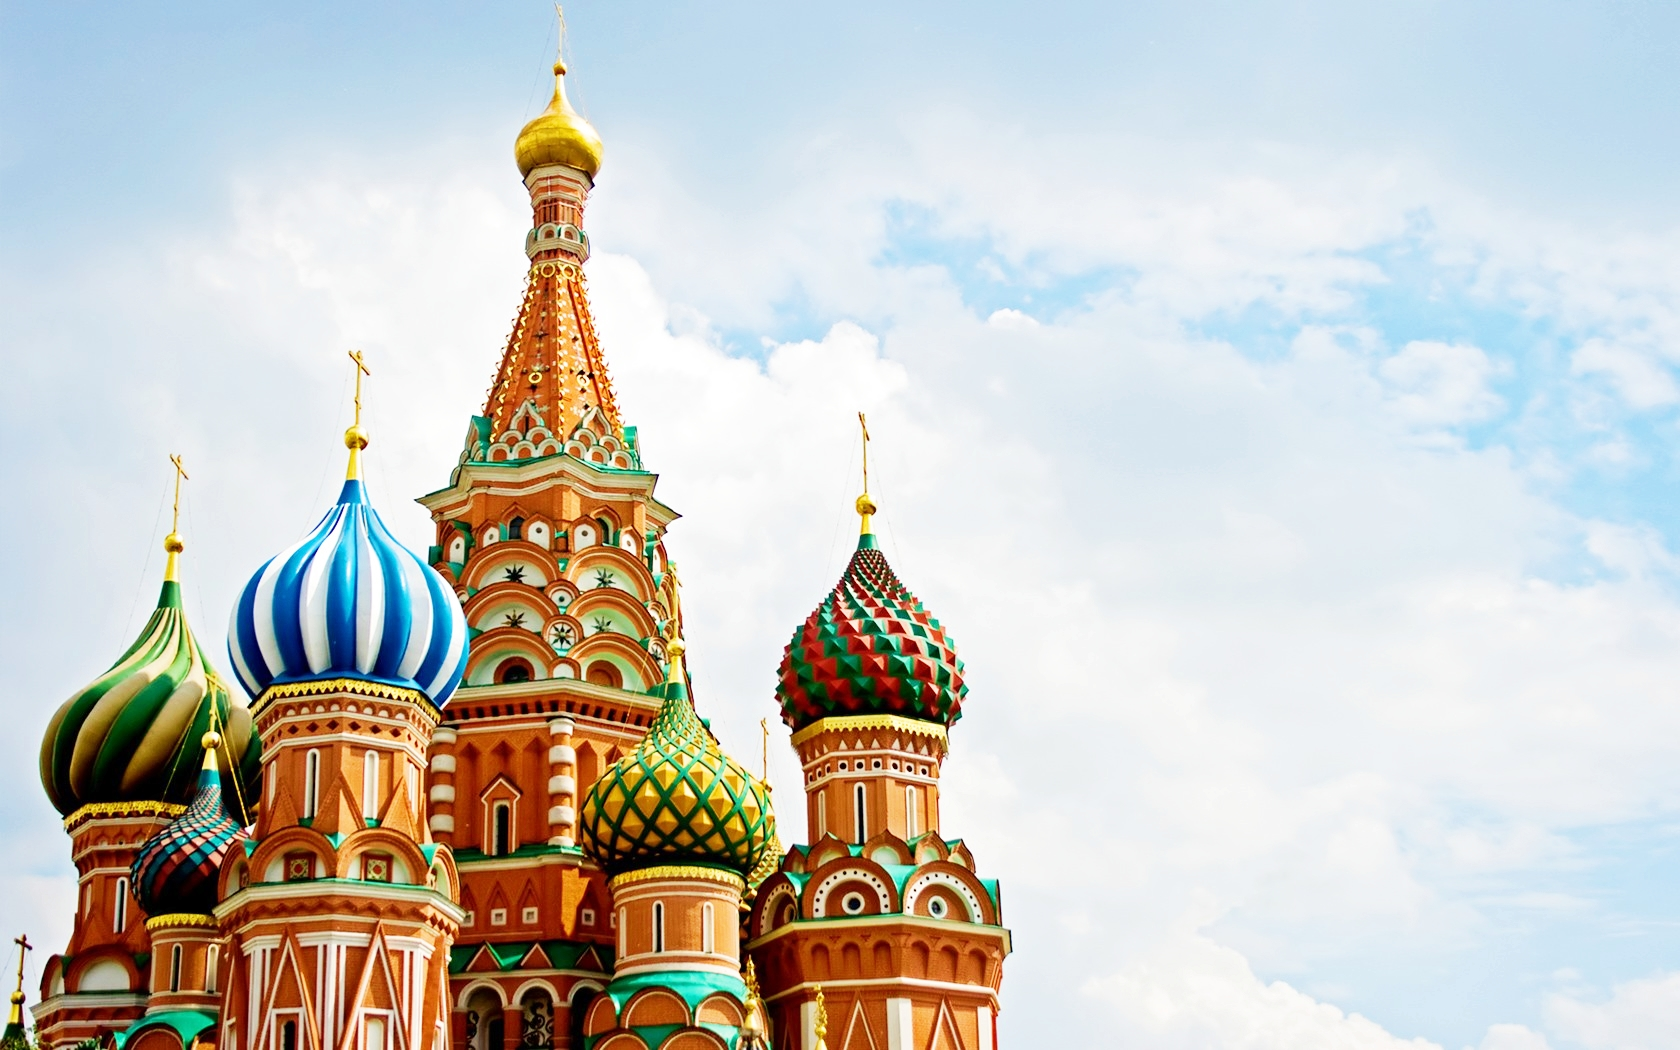 St. Basil's Cathedral - Russia Wallpaper (33388434) - Fanpop: www.fanpop.com/clubs/russia/images/33388434/title/st-cathedral...